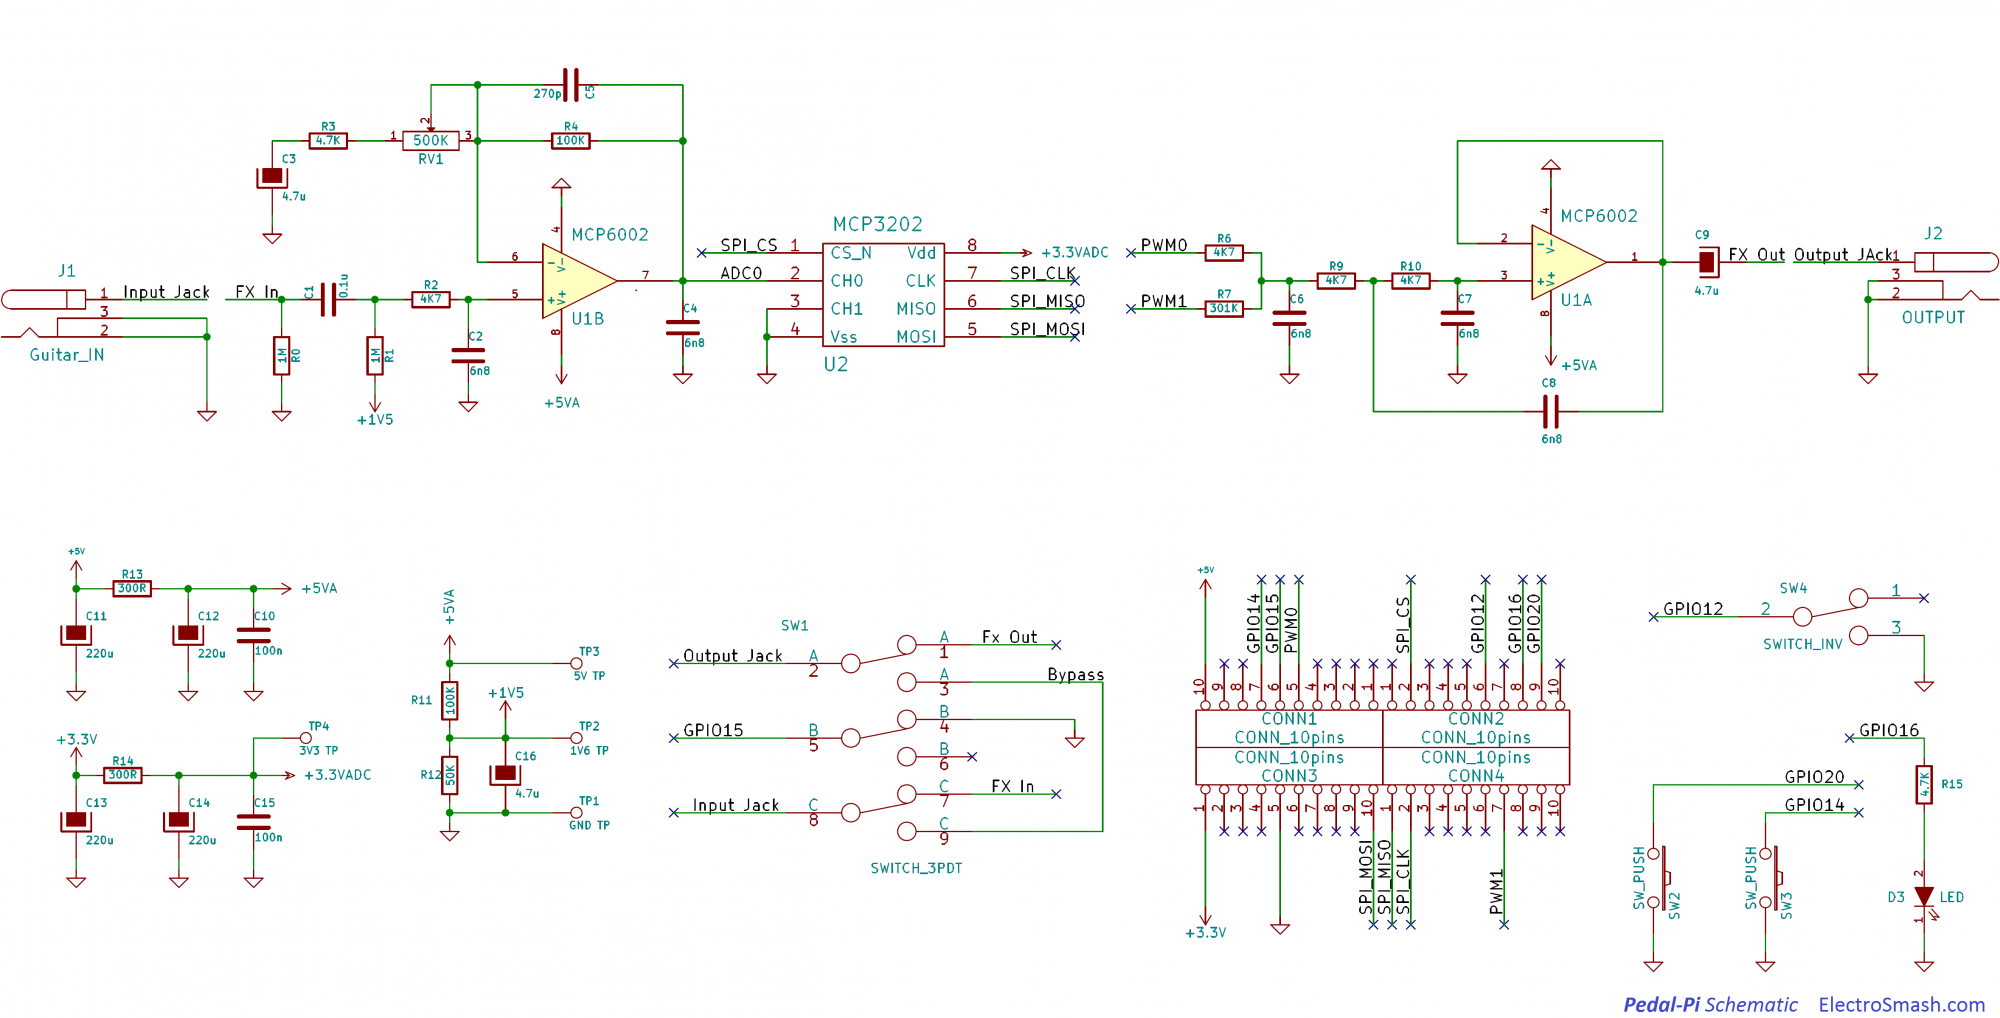 pedal-pi-schematic.png